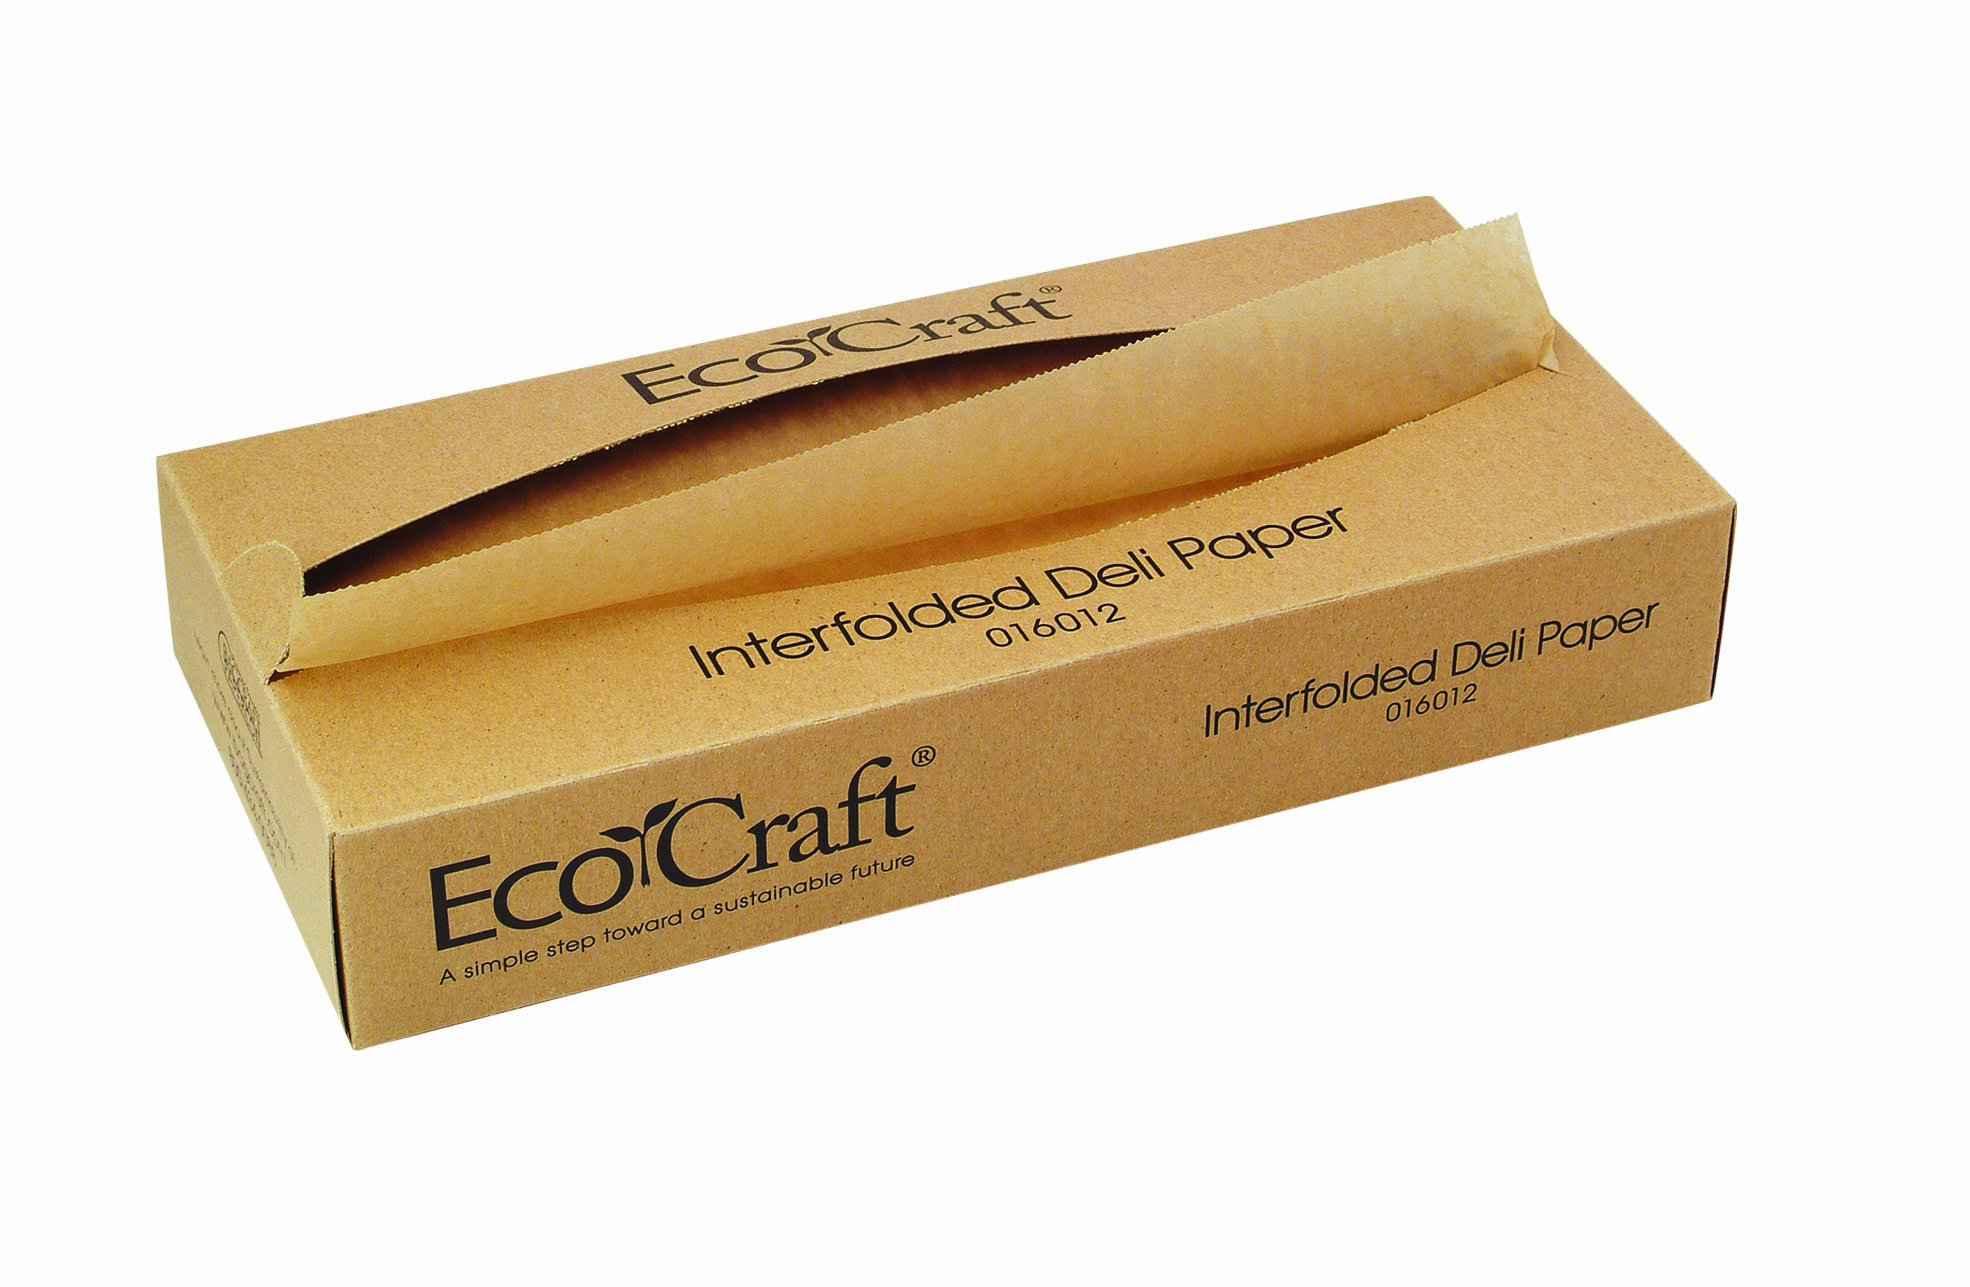 Bagcraft Papercon 016015 EcoCraft Interfolded Dry Wax Deli Paper, 10-3/4'' Length x 15'' Width, NK15 Natural (12 Packs of 500) by Bagcraft Papercon (Image #1)